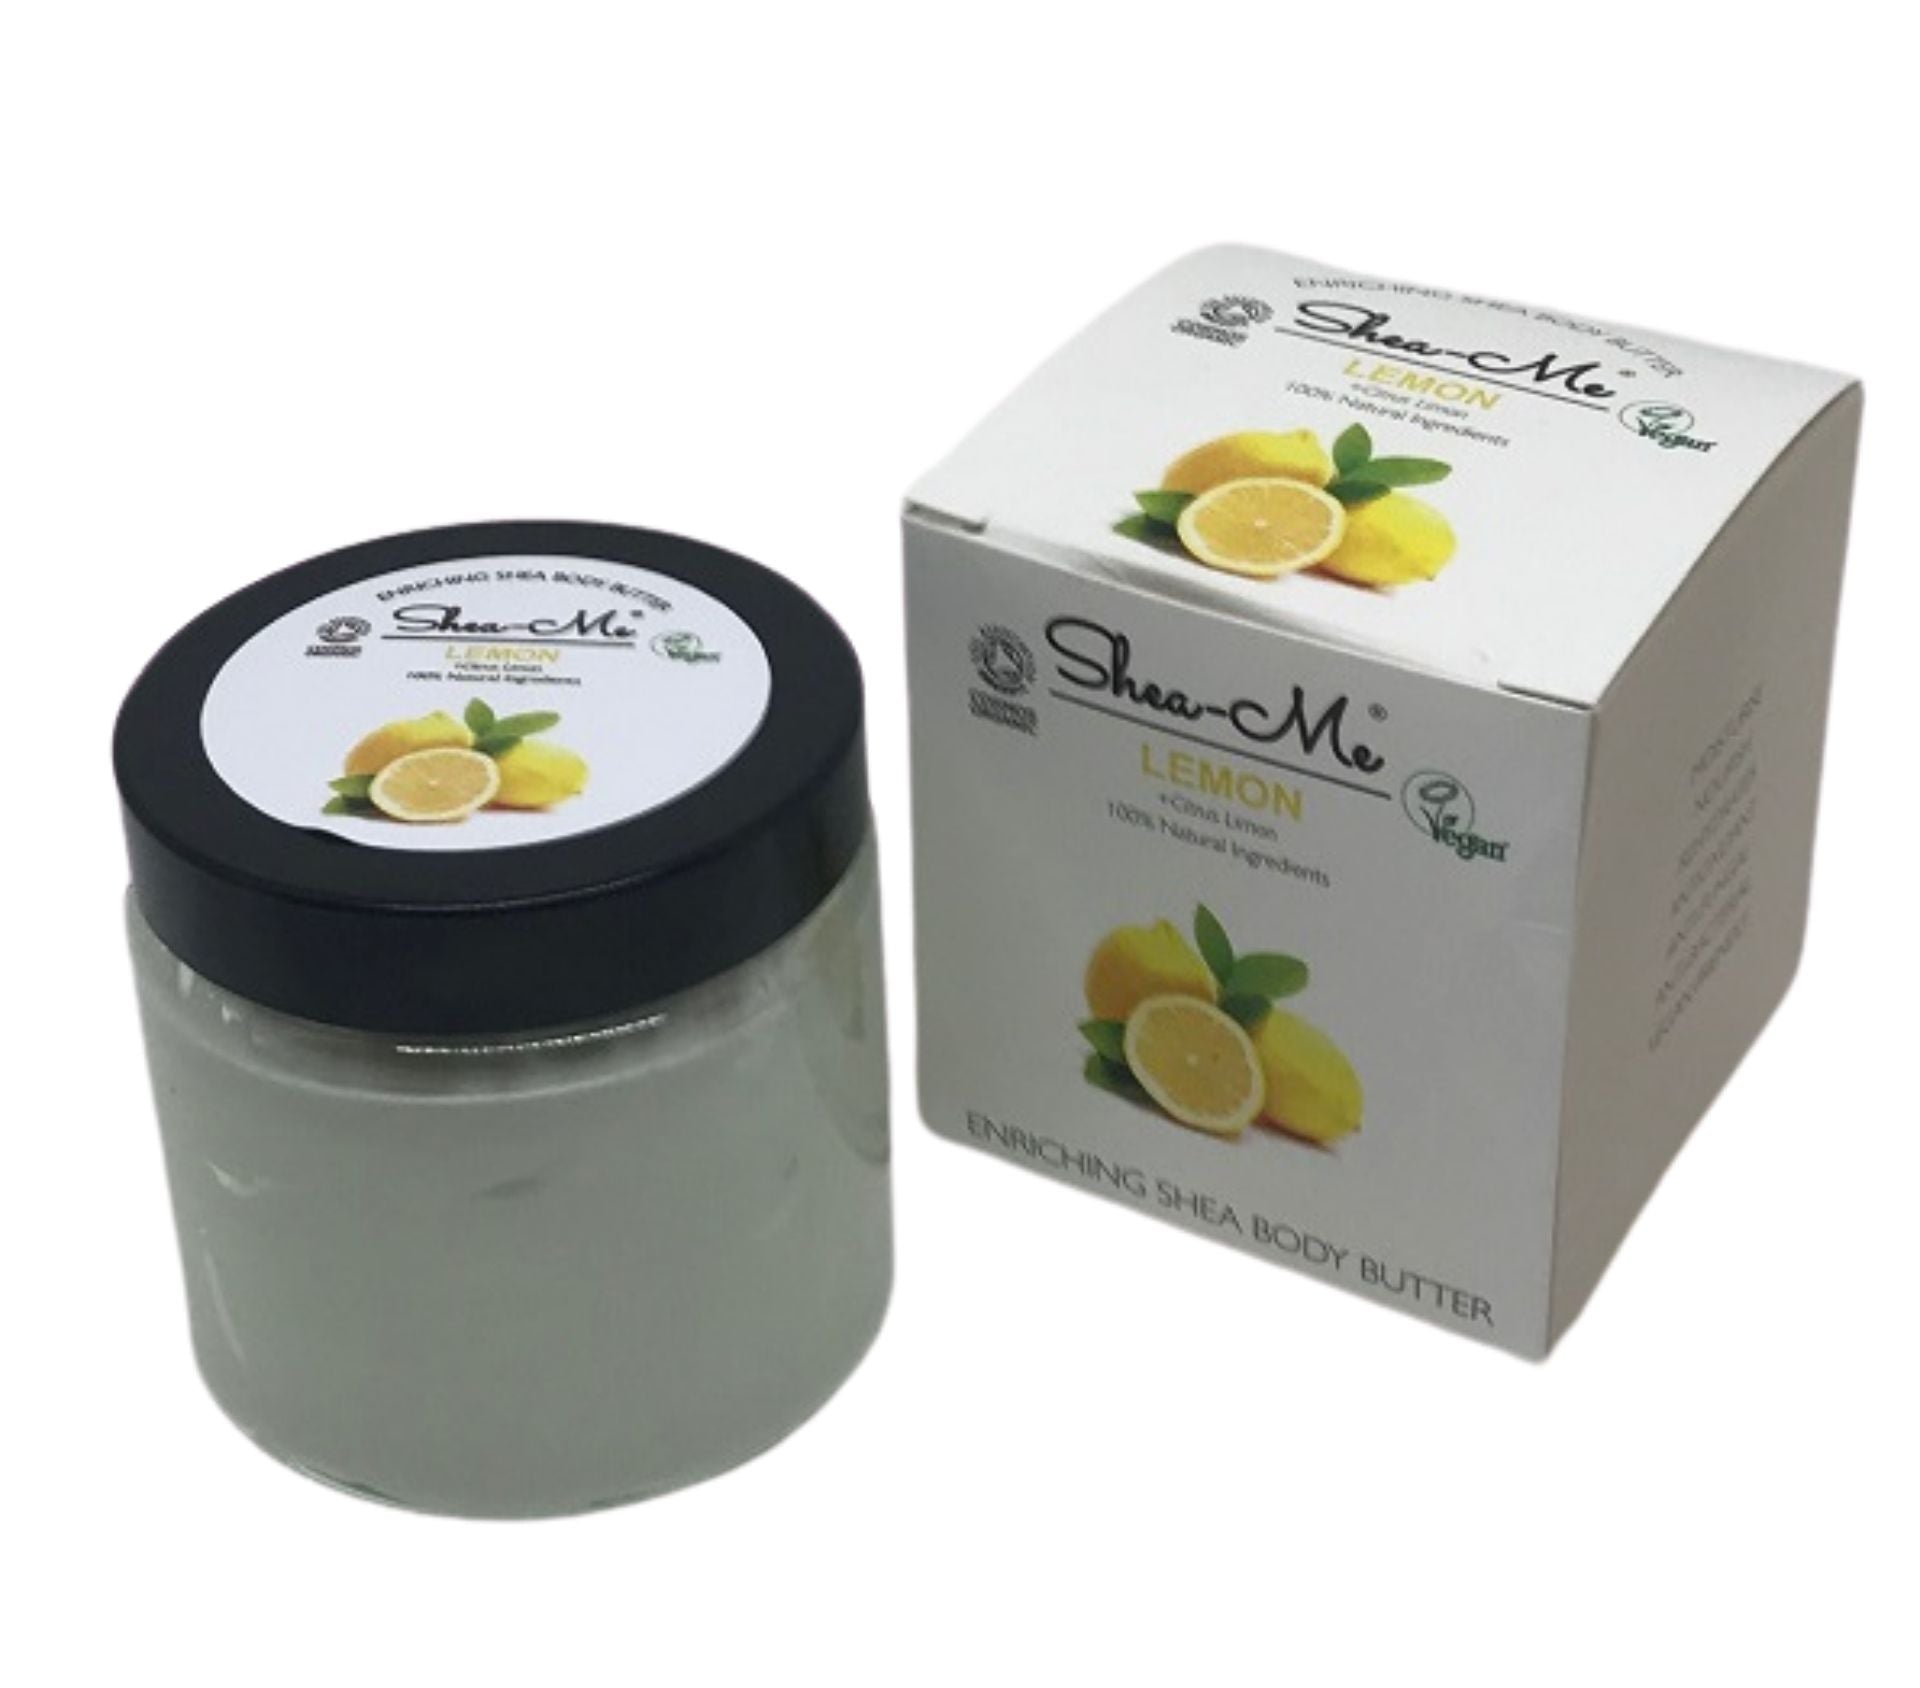 Lemon Oil Shea Body Butter